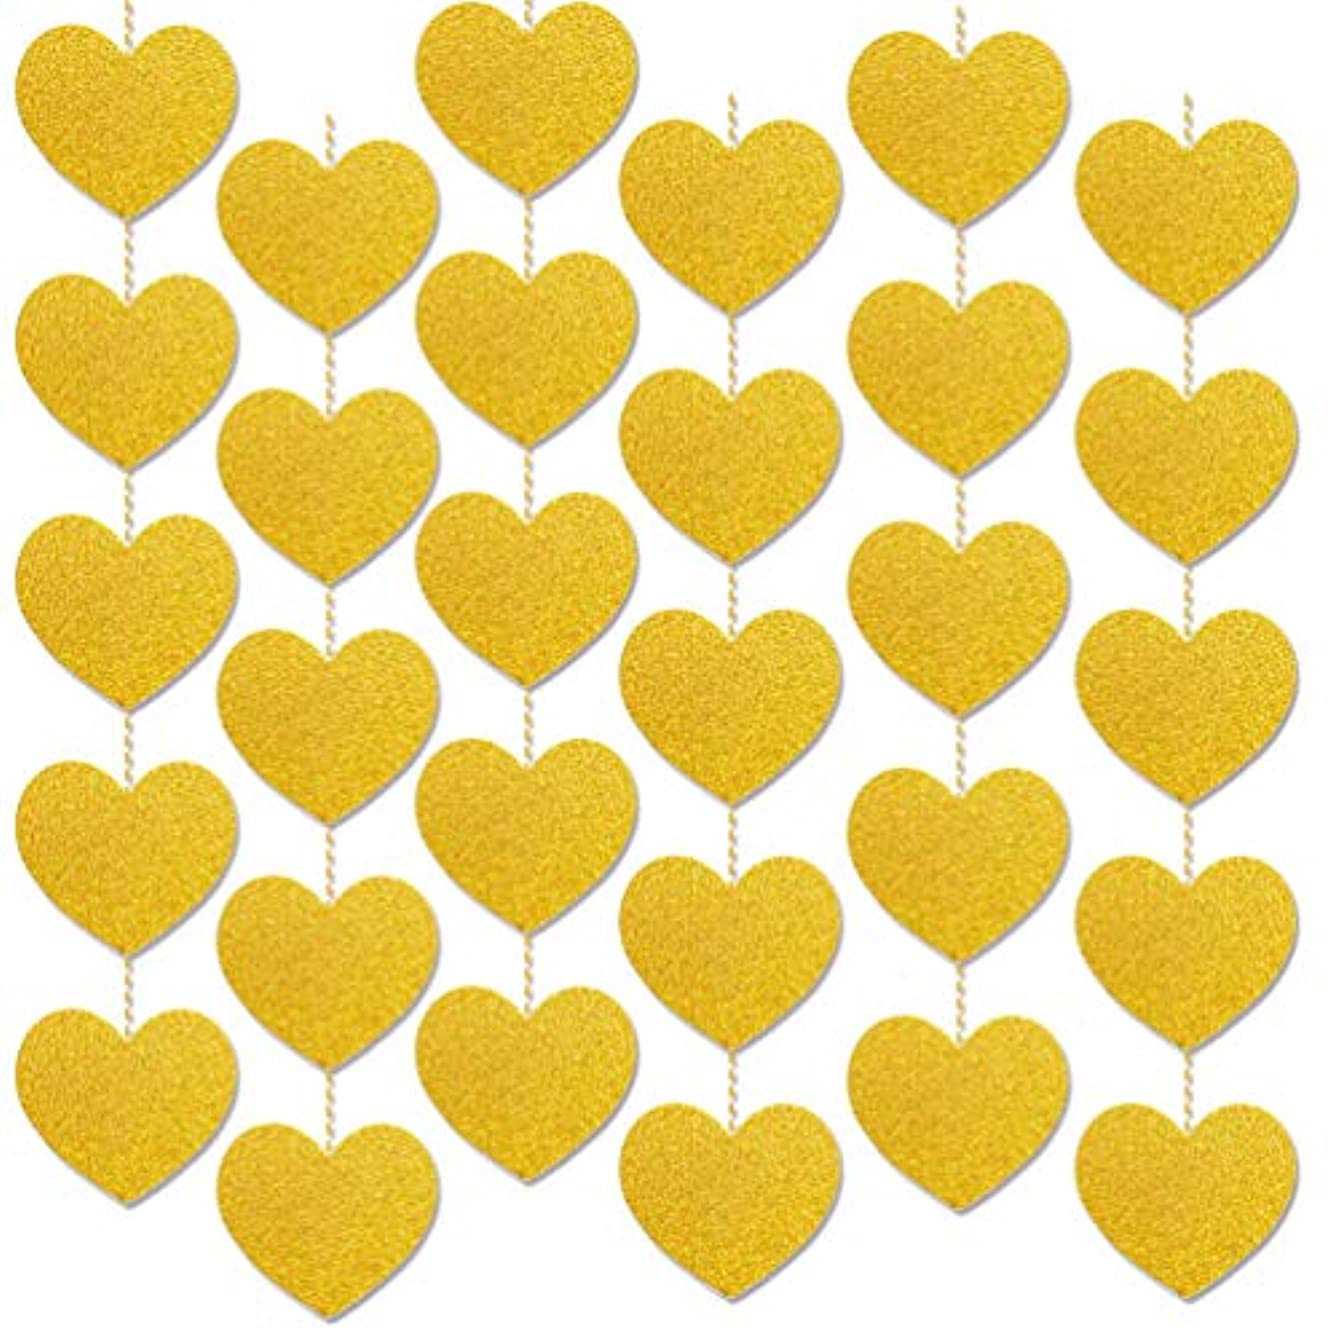 Gold Heart Garlands Wedding Party Decorations, 2 pcs x 13ft